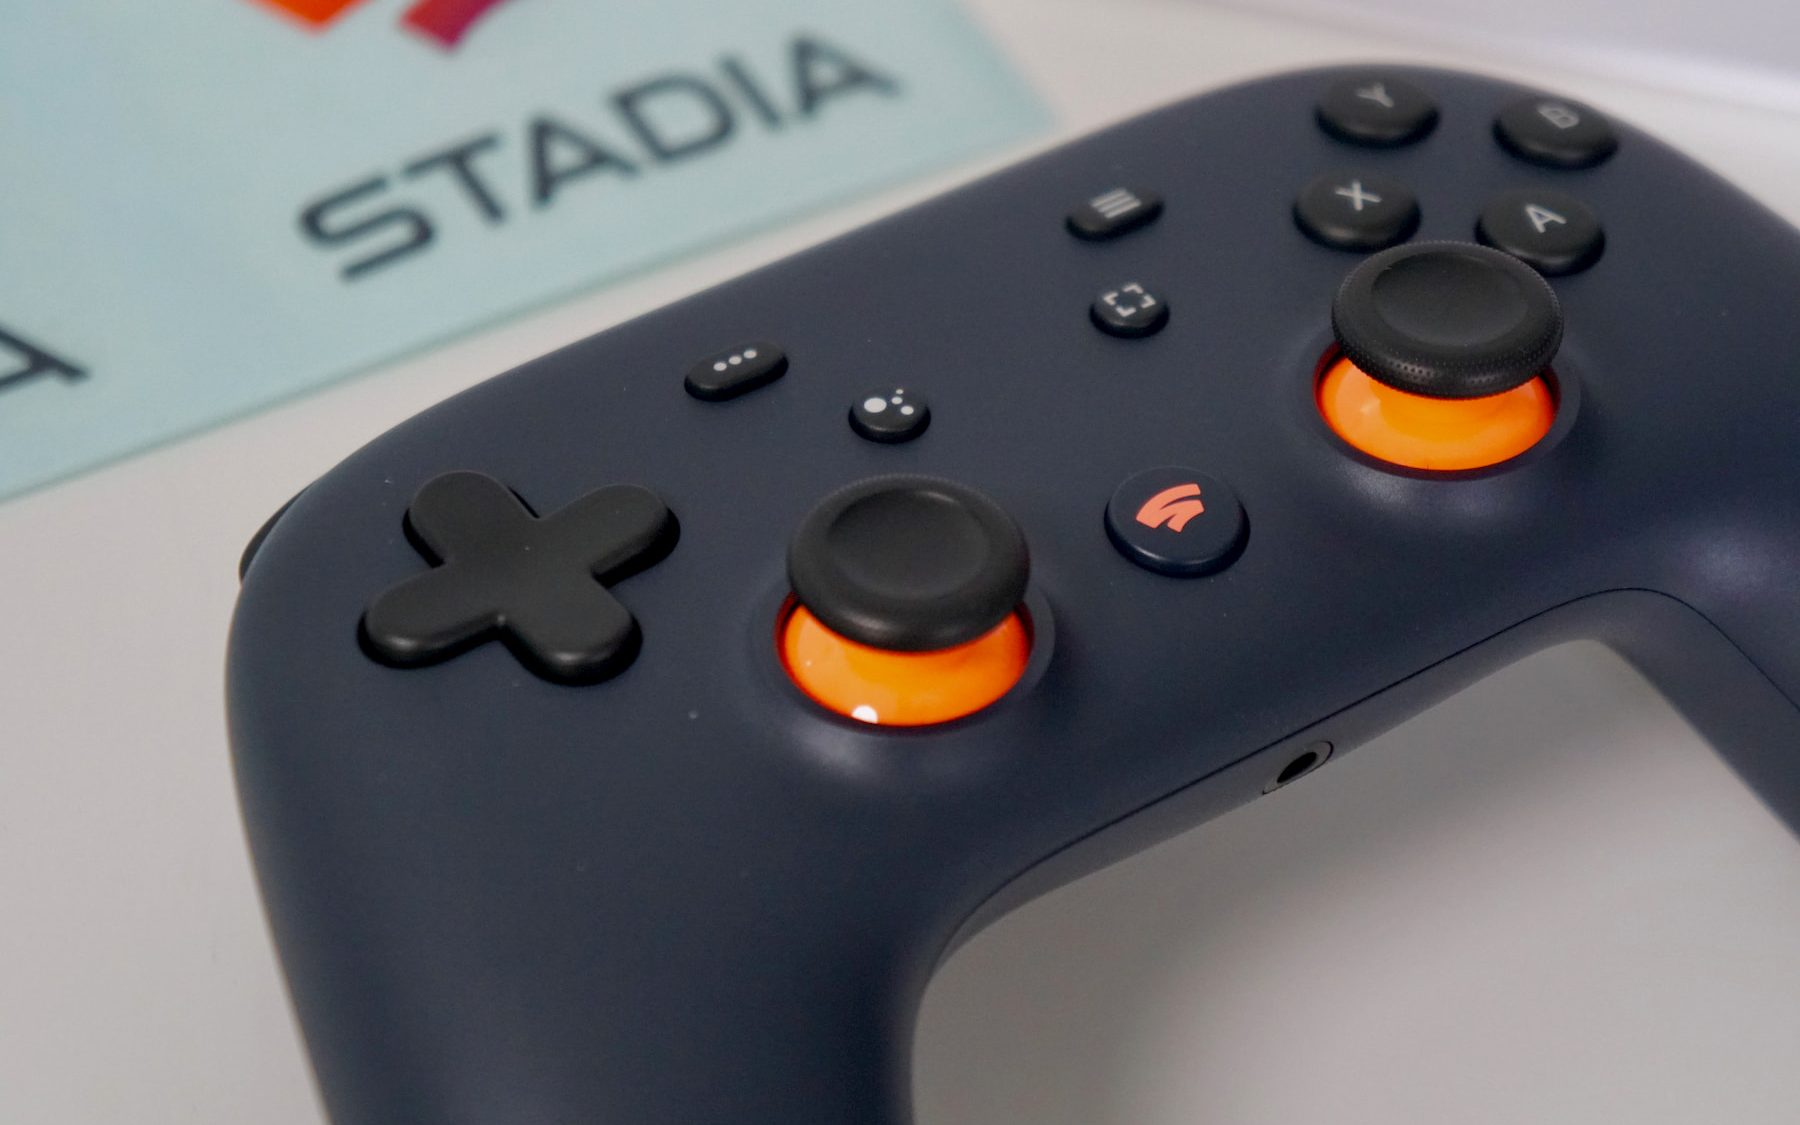 Google admits issues and has fixed the broken Stadia invite code rollout